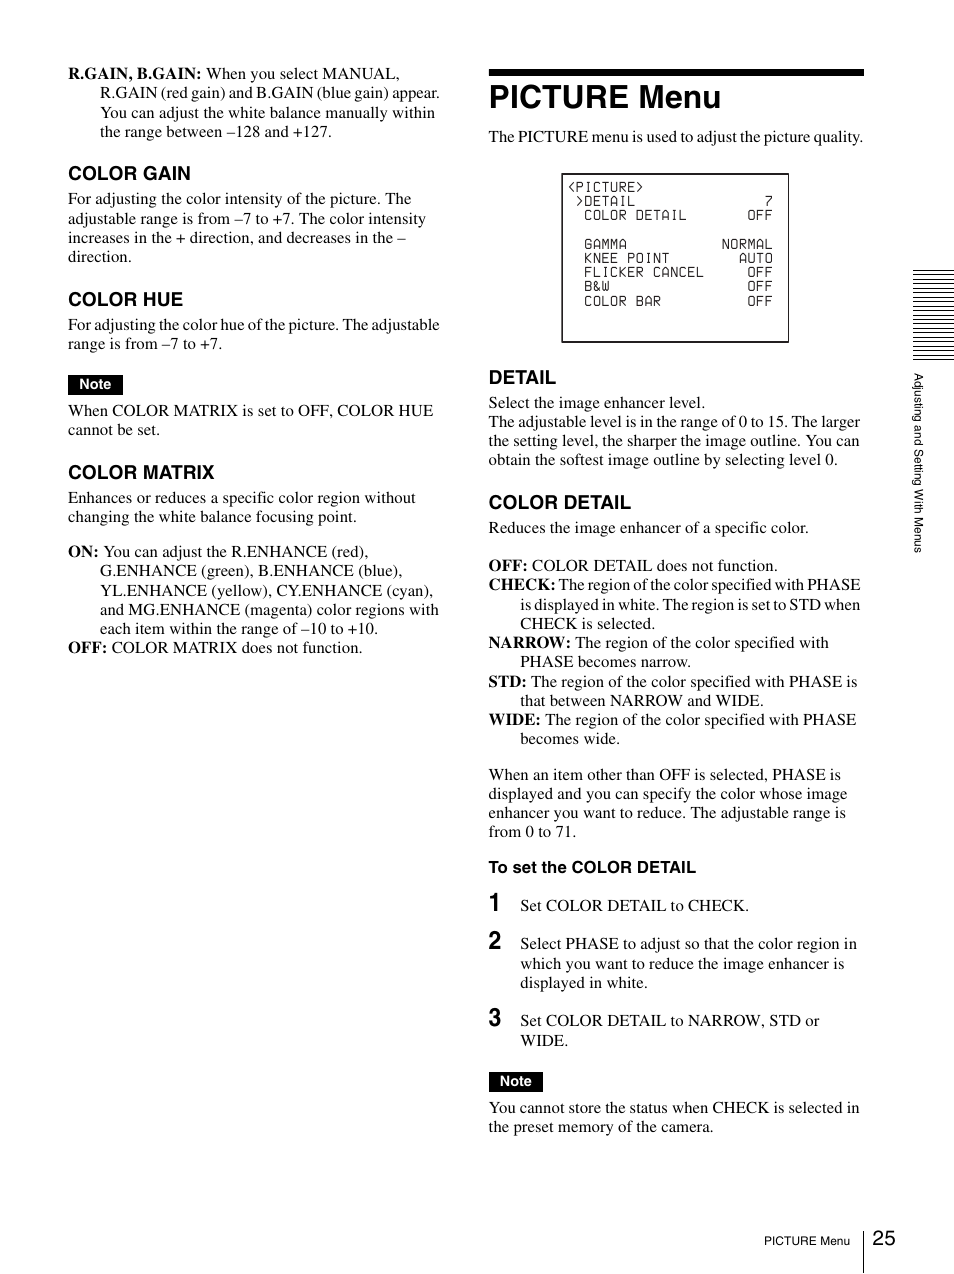 Troubleshooting | sony brc-z330 user manual | page 58 / 73.